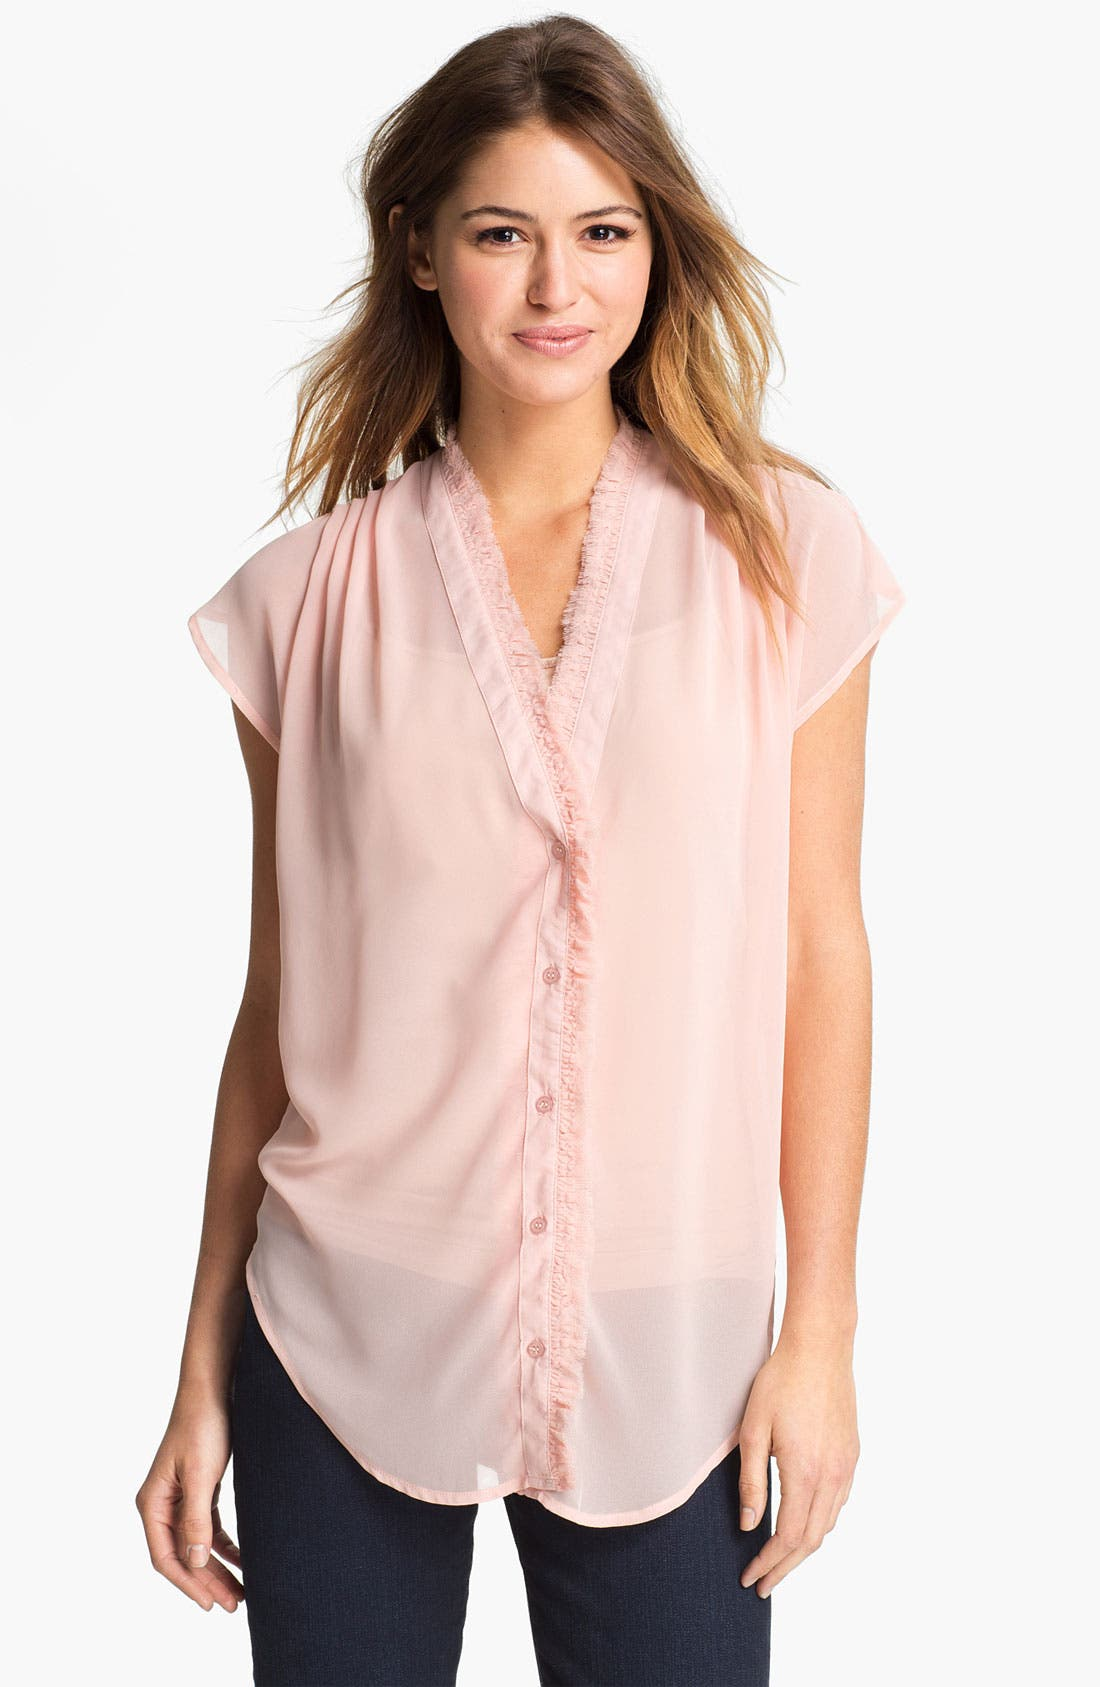 Alternate Image 1 Selected - Press Cap Sleeve Sheer Chiffon Shirt (Online Only)